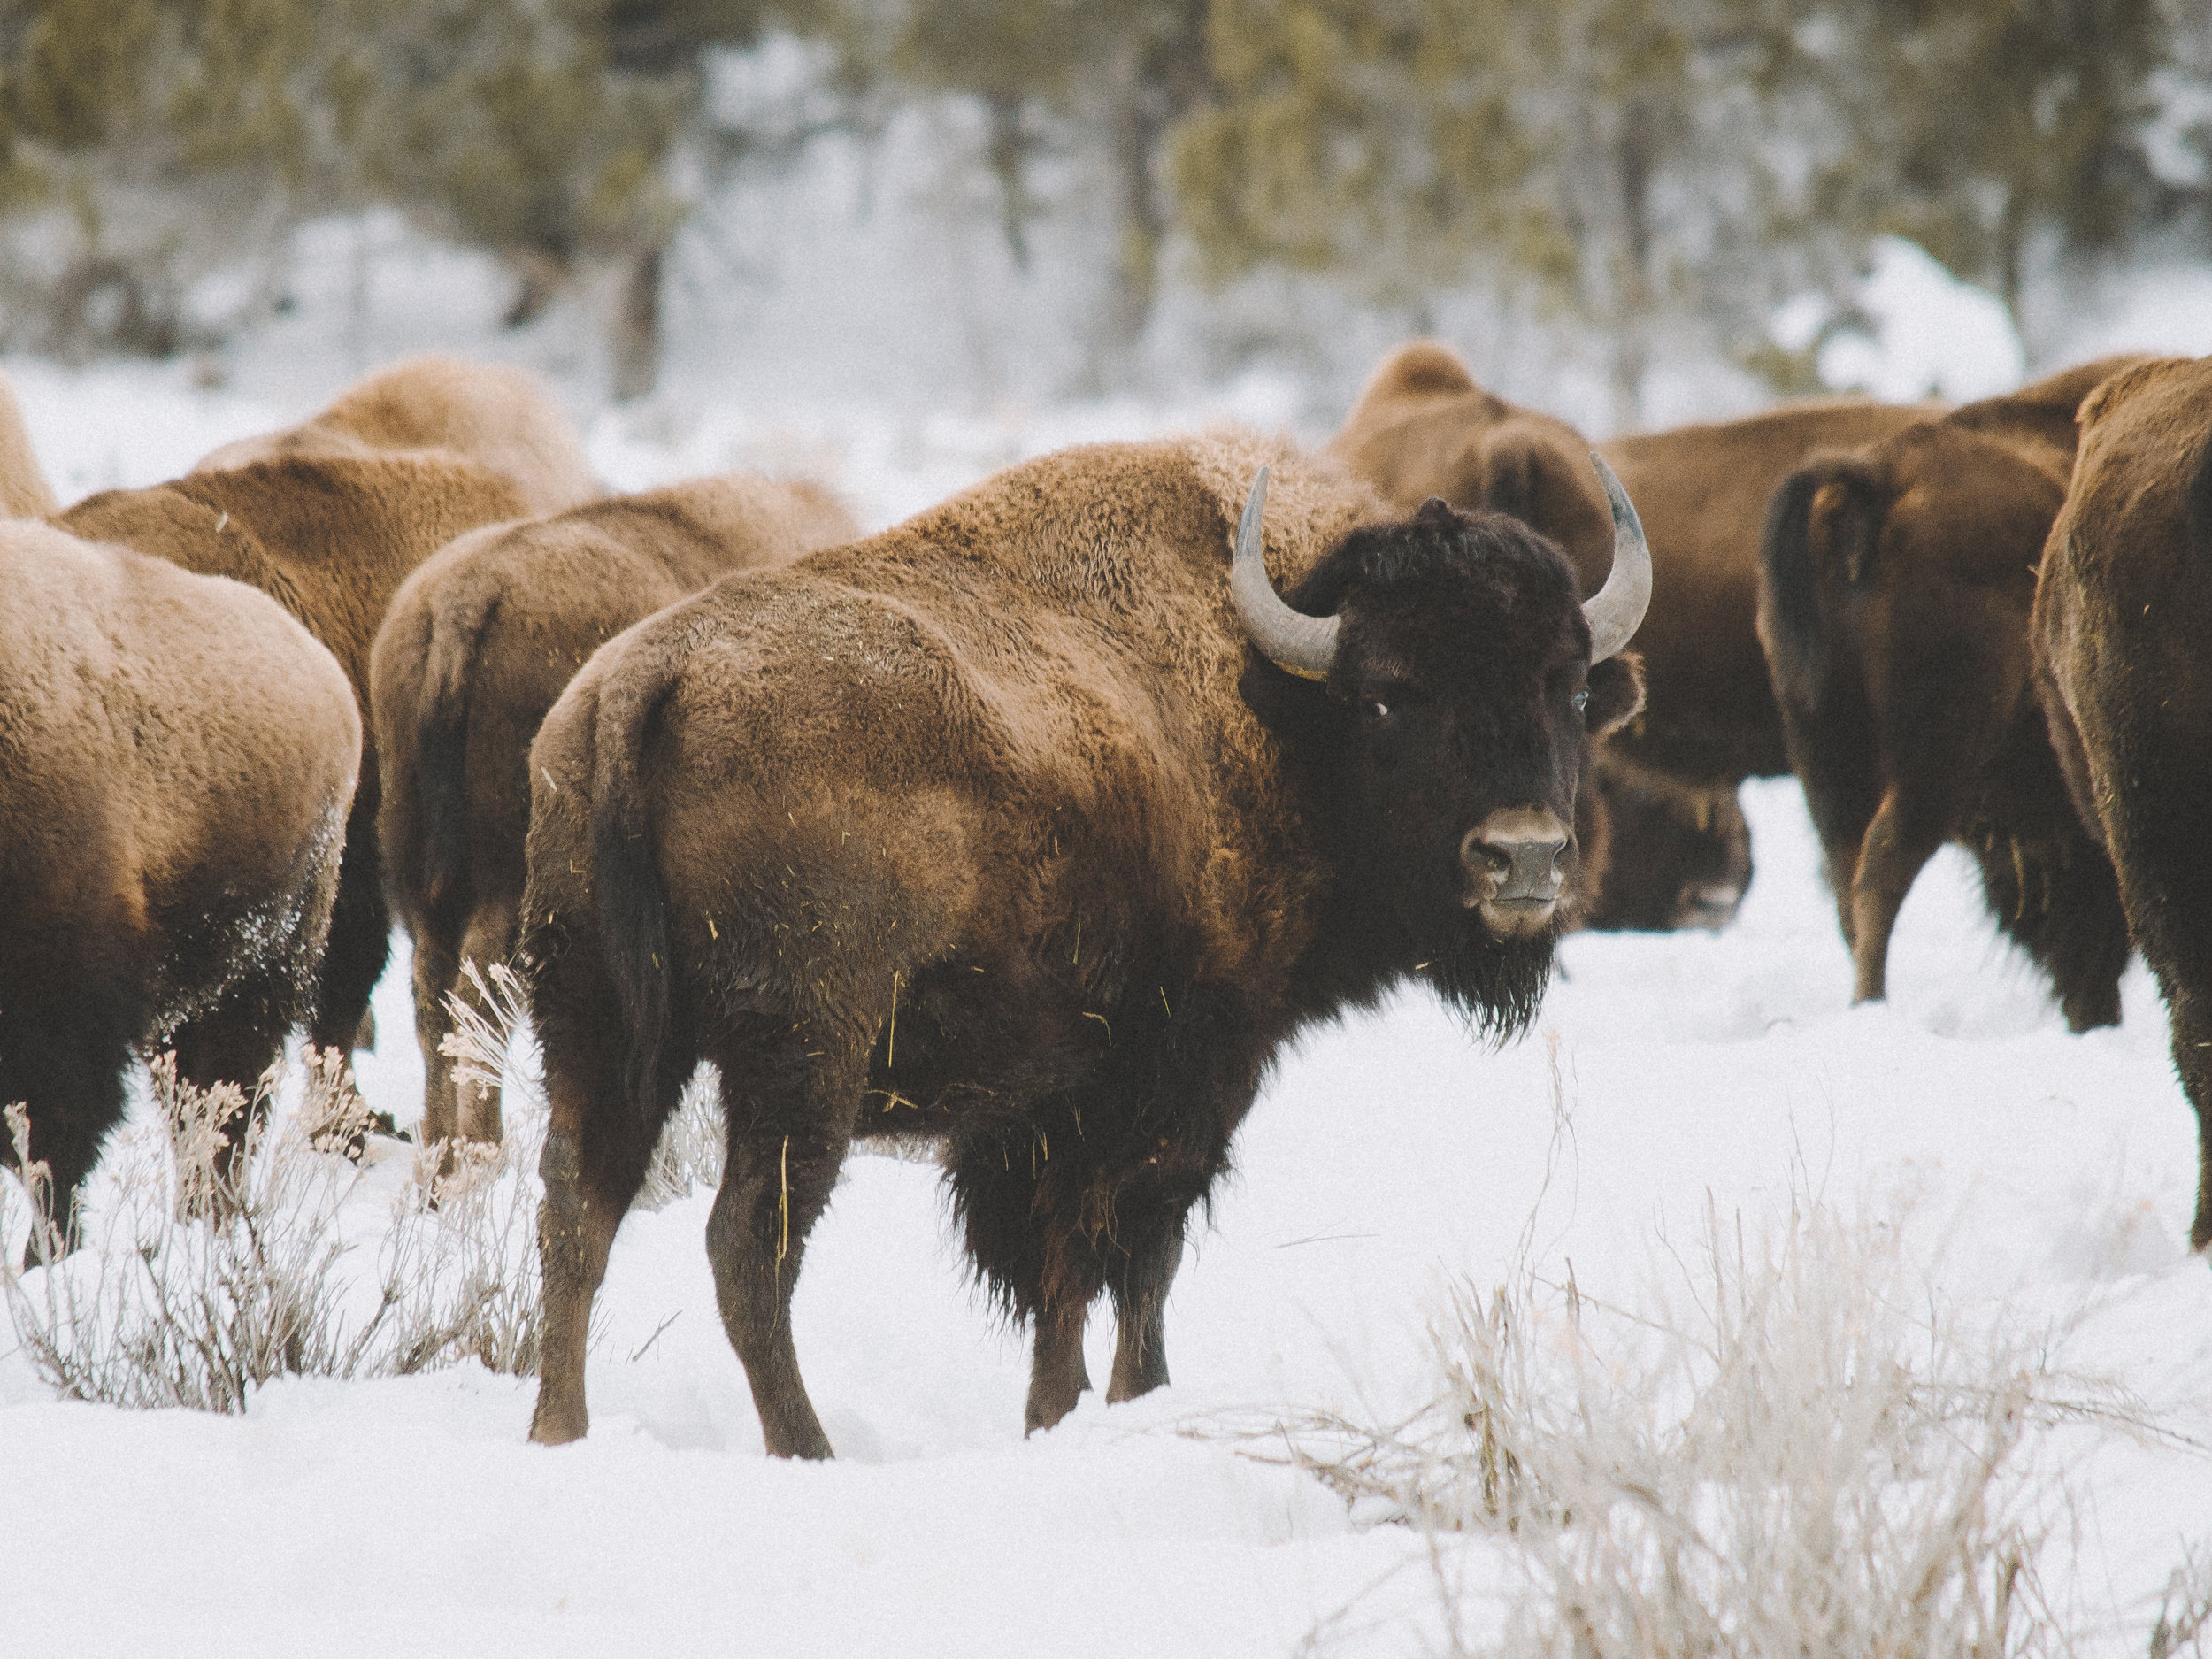 Bison in the Snow, Zion National Park, Utah